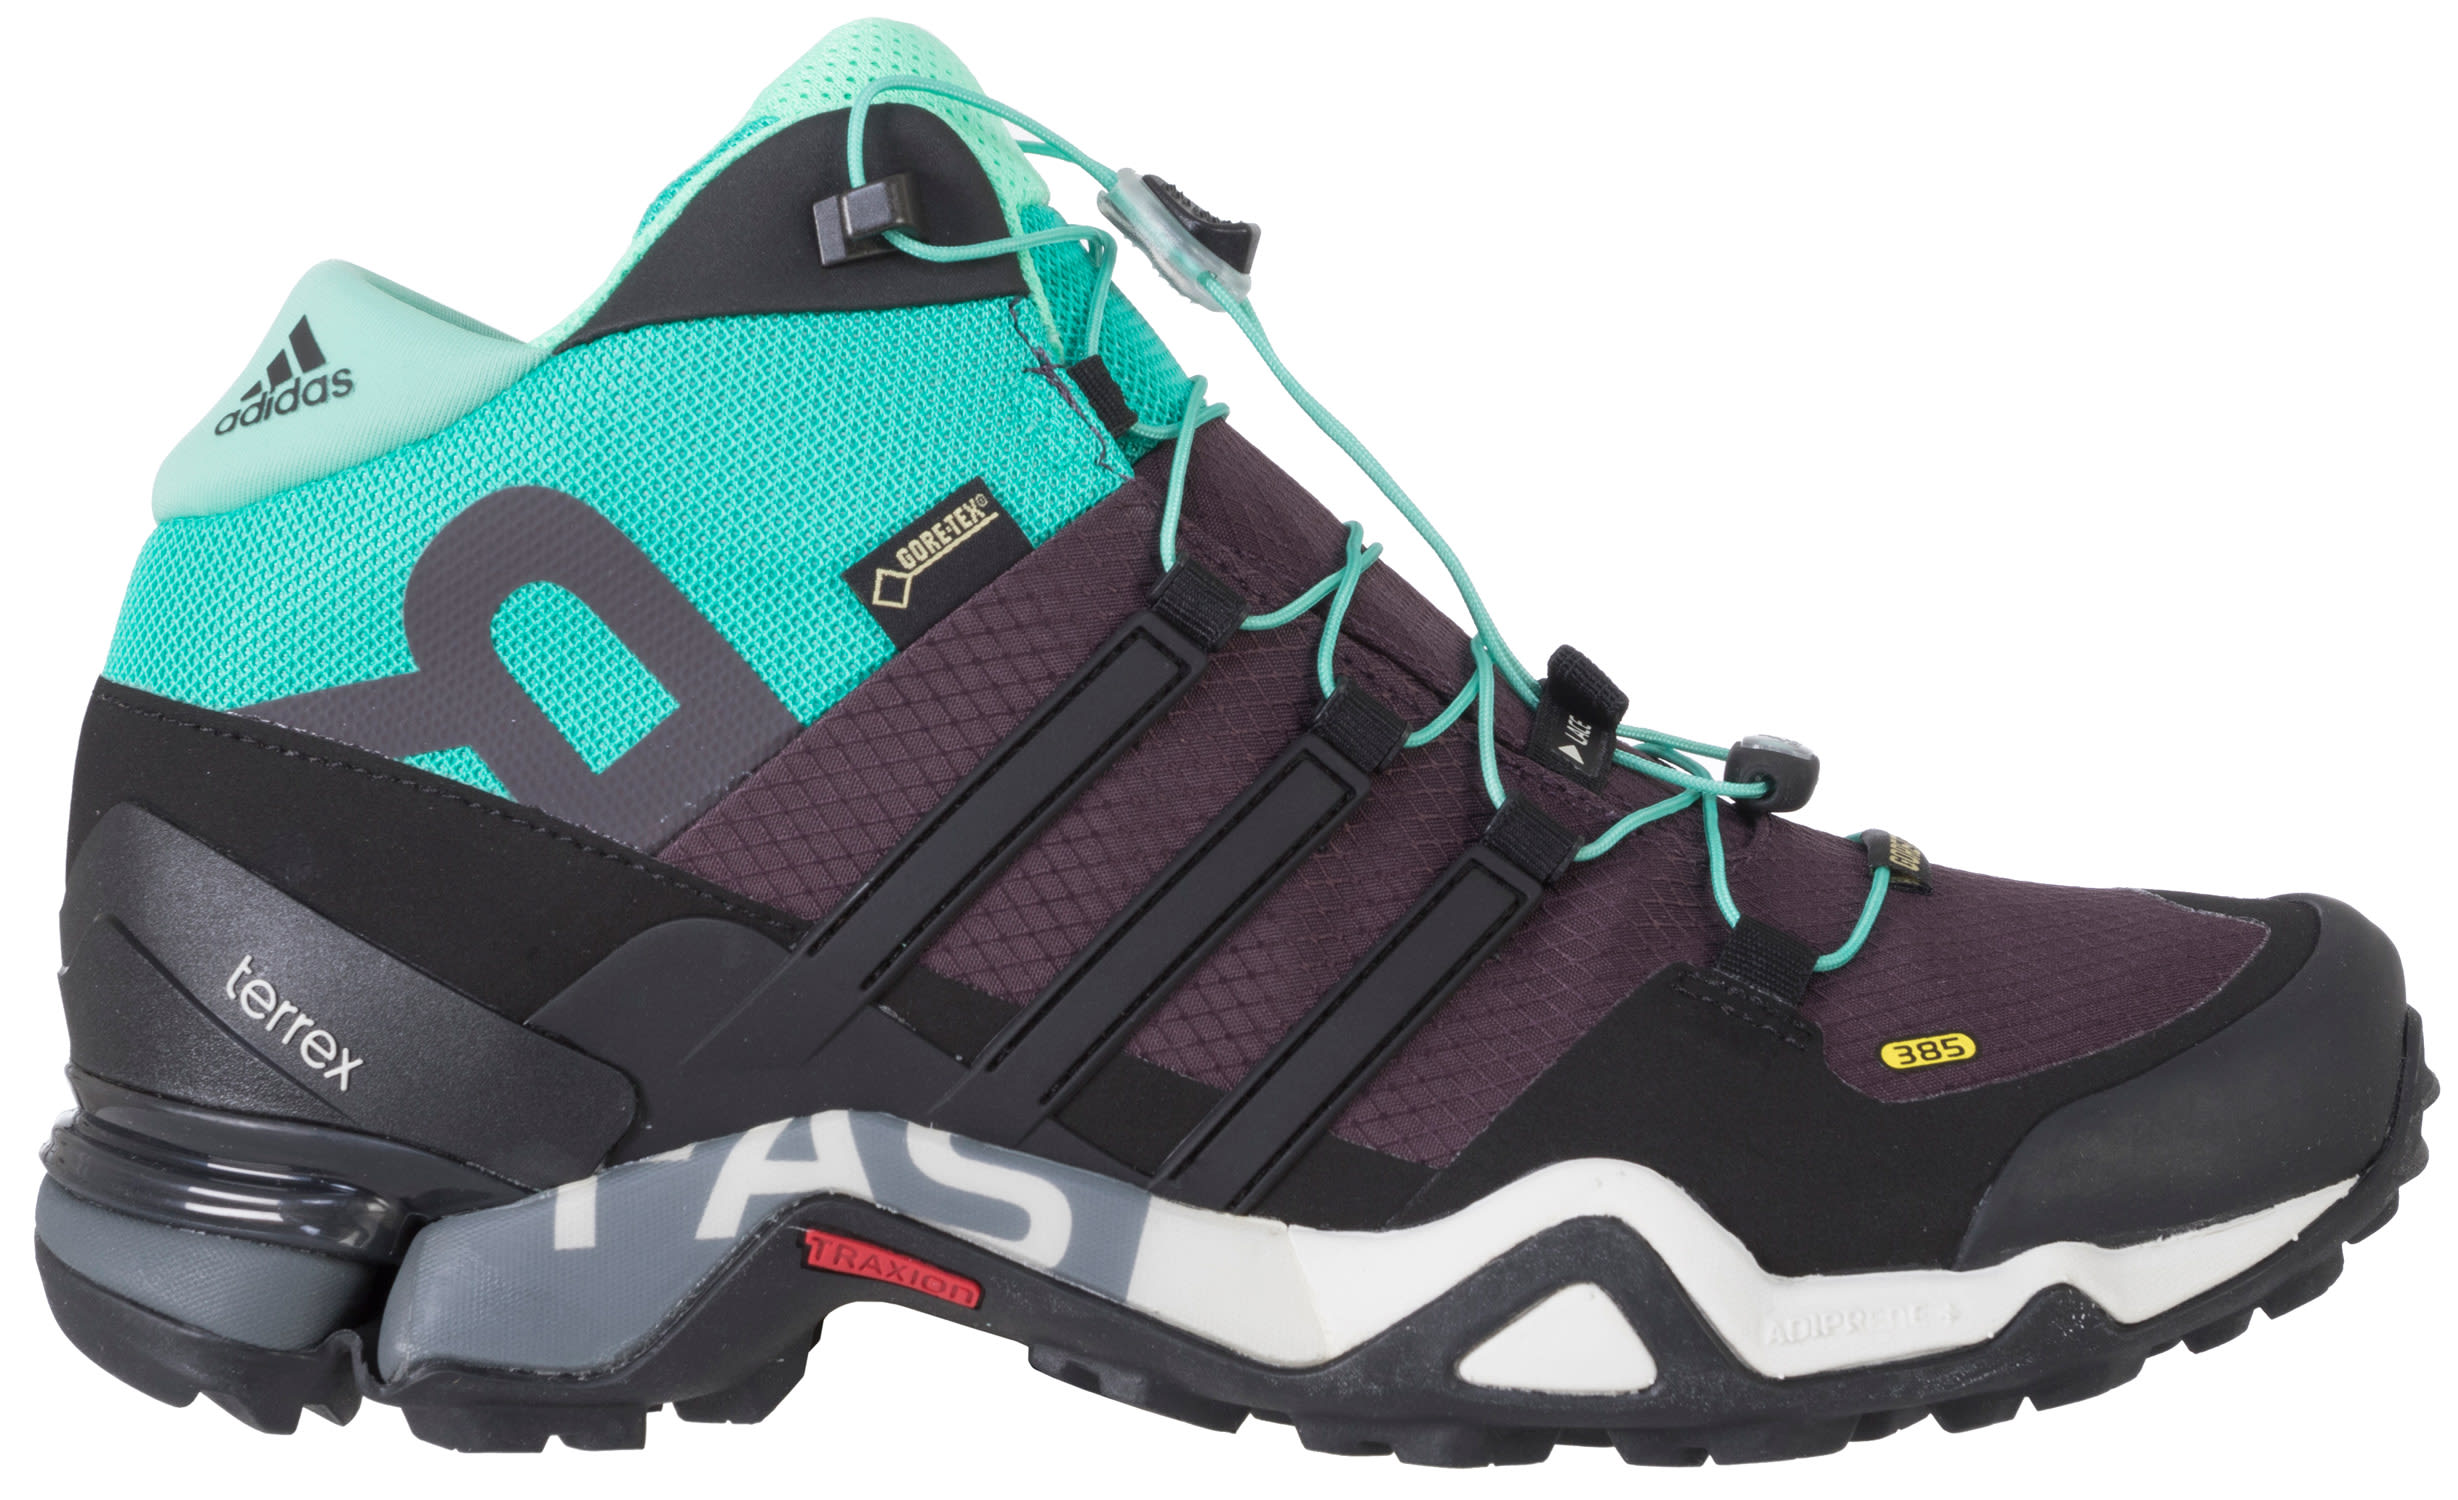 adidas terrex fast r mid gtx hiking shoes womens. Black Bedroom Furniture Sets. Home Design Ideas